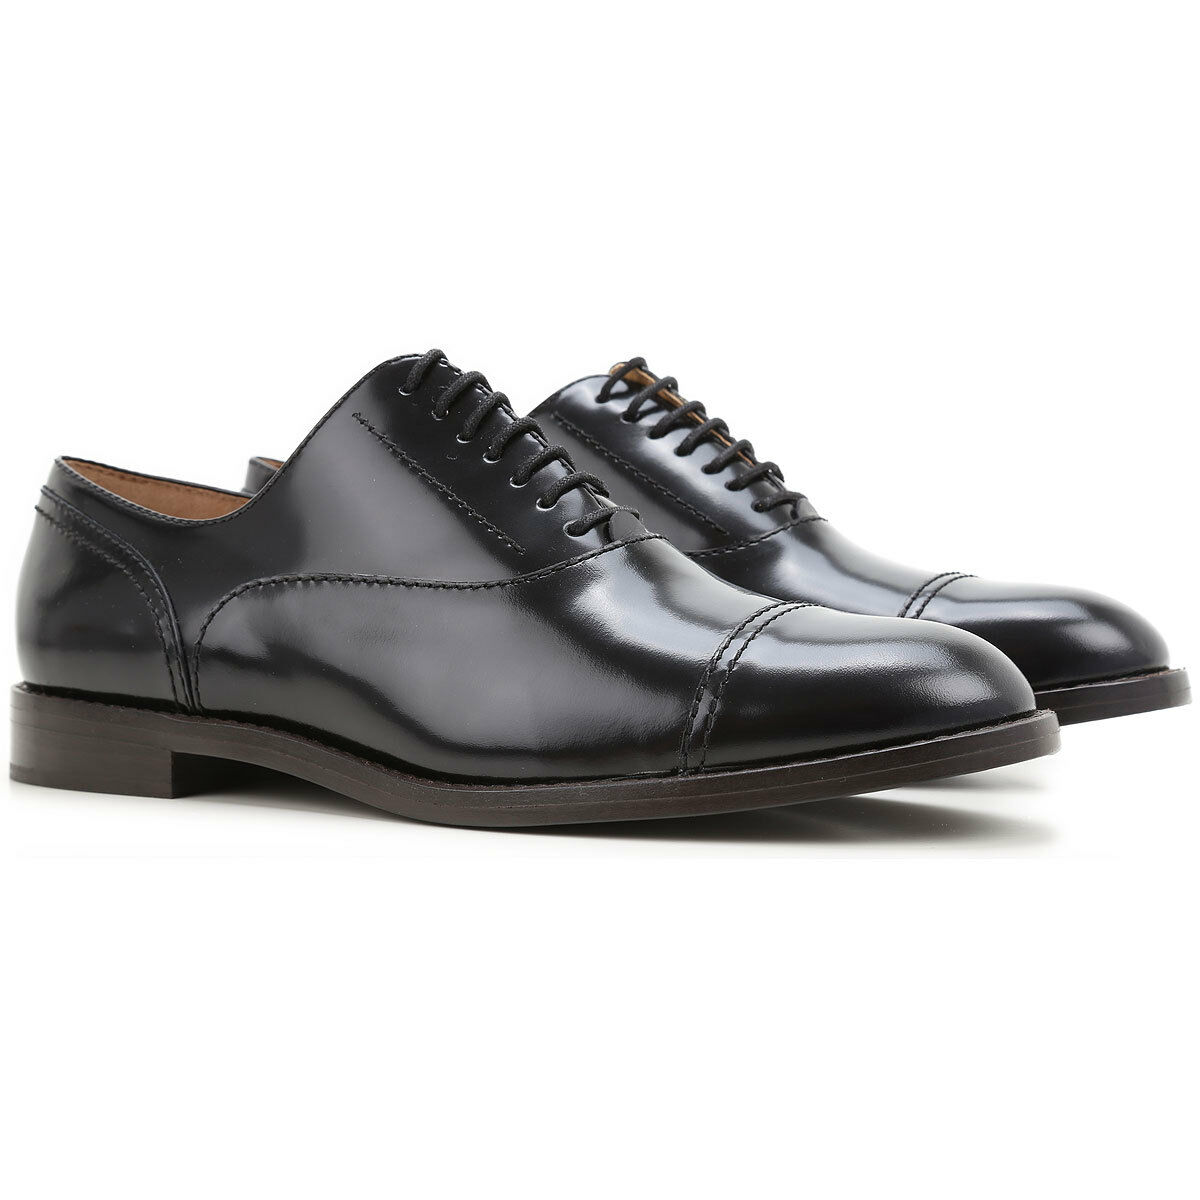 Marc Jacobs Allacciata oxford clinton, Oxford clinton lace- up